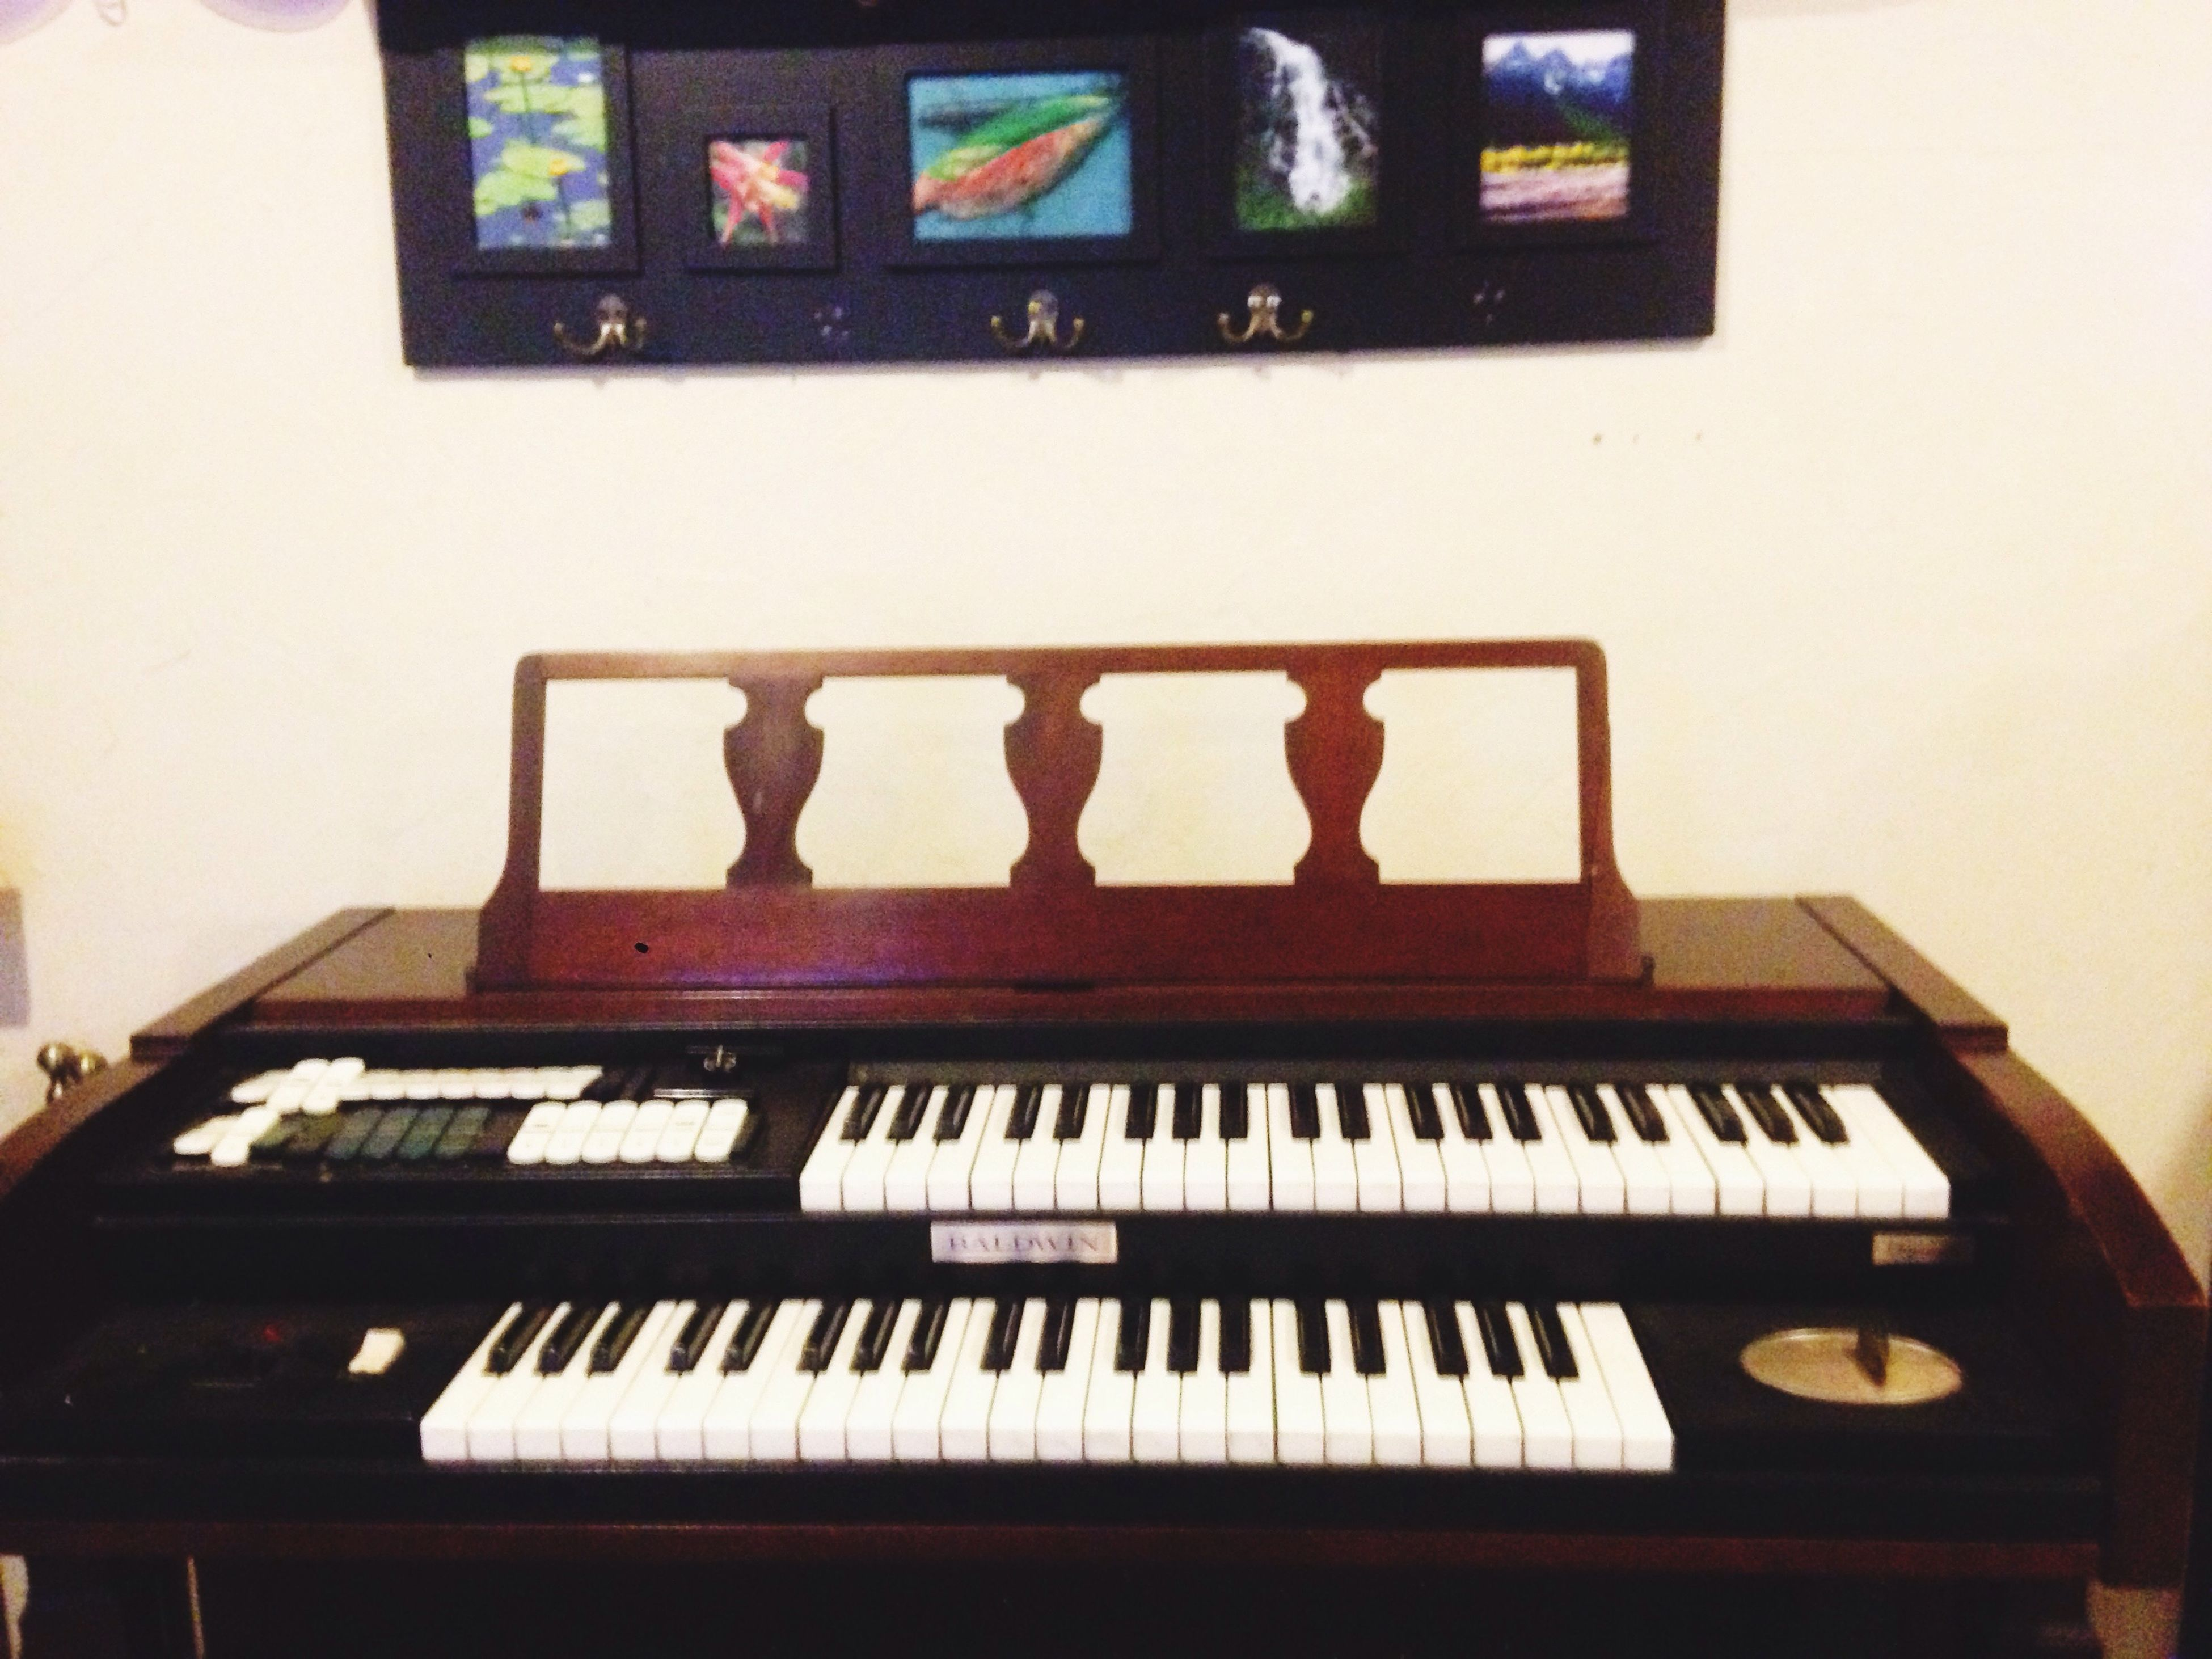 music, piano, piano key, musical instrument, arts culture and entertainment, indoors, no people, close-up, day